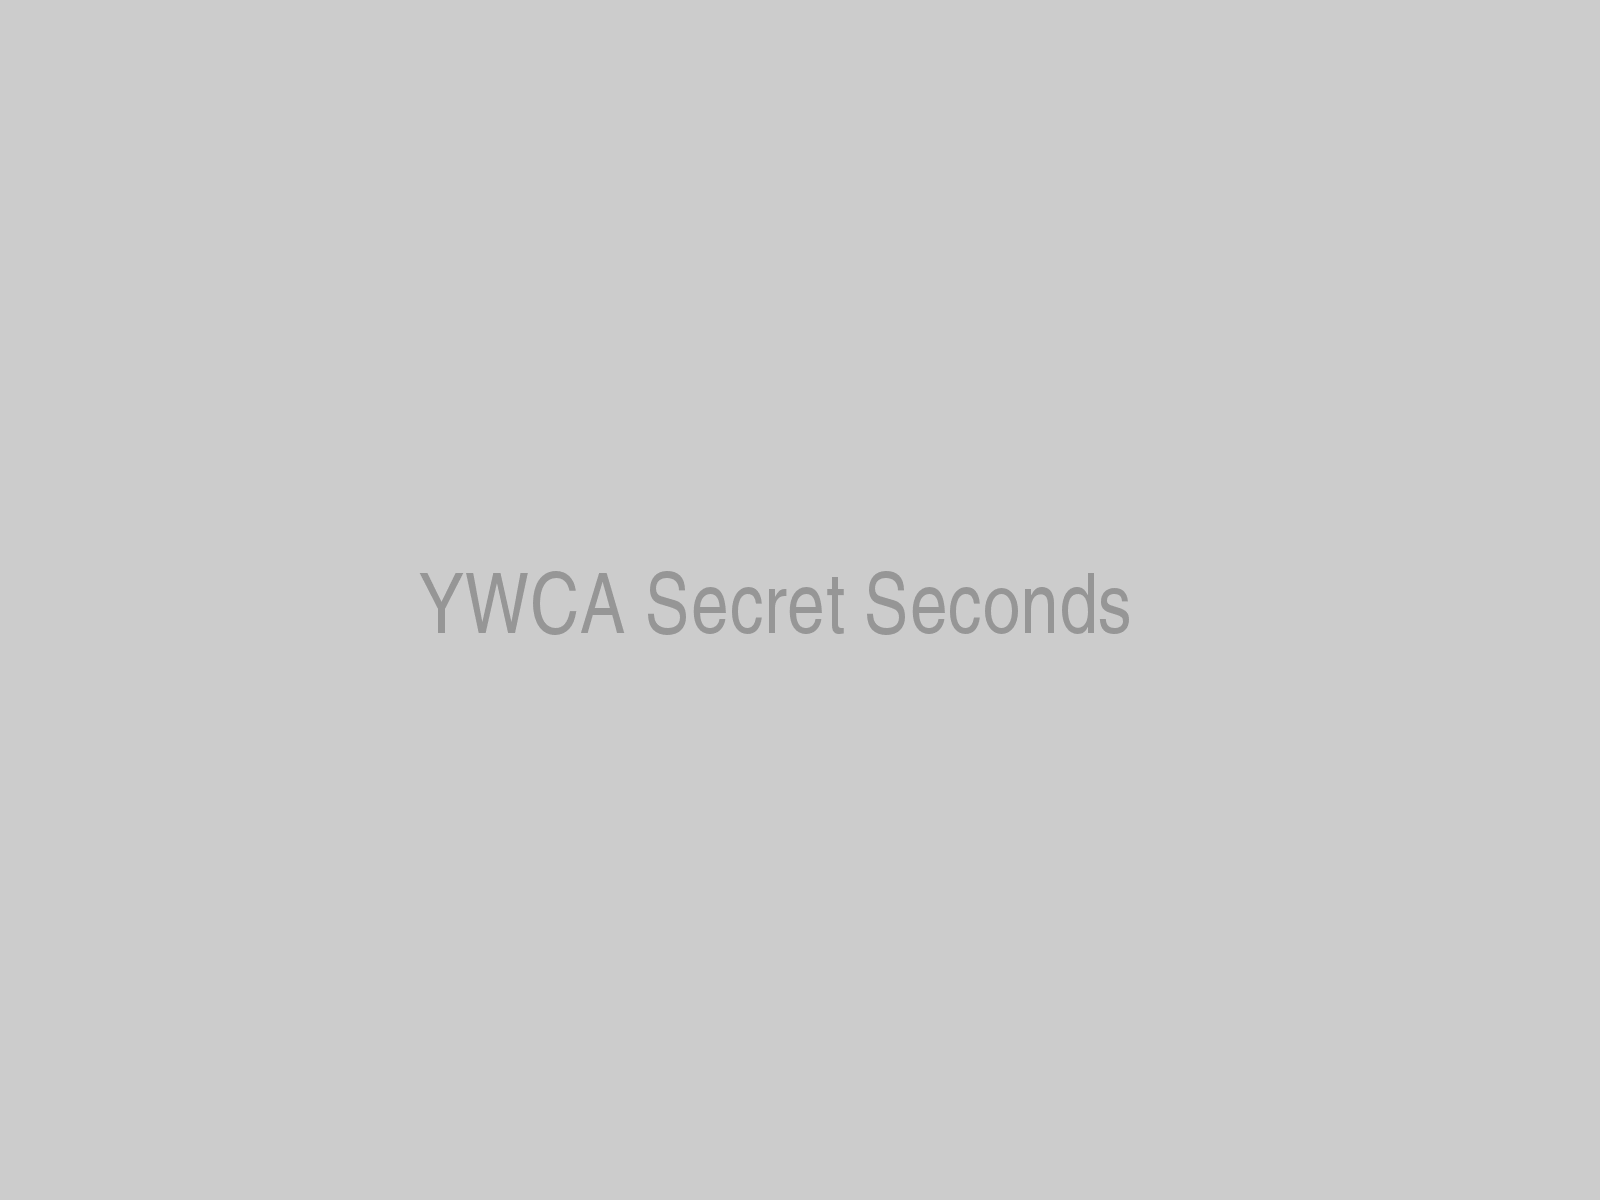 YWCA Secret Seconds